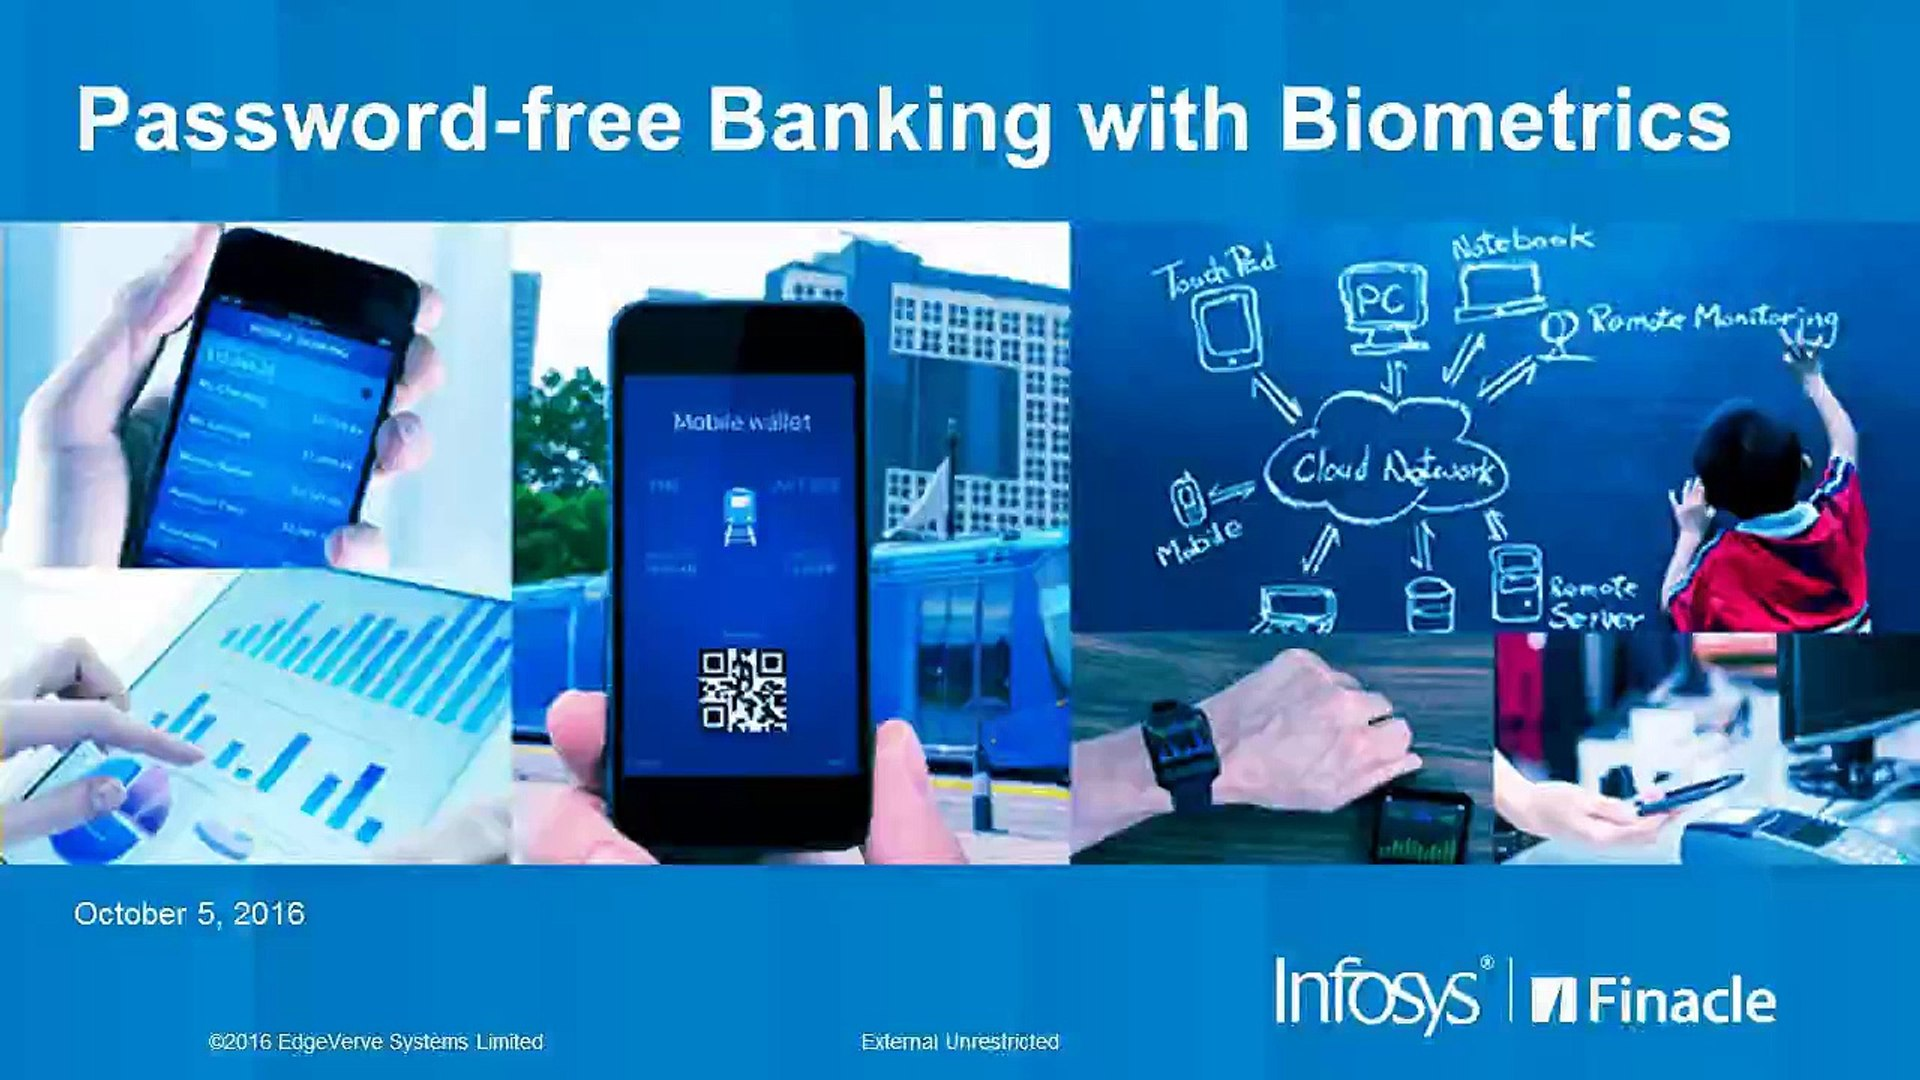 Password free Banking with Biometrics - Watch the live voice banking demo